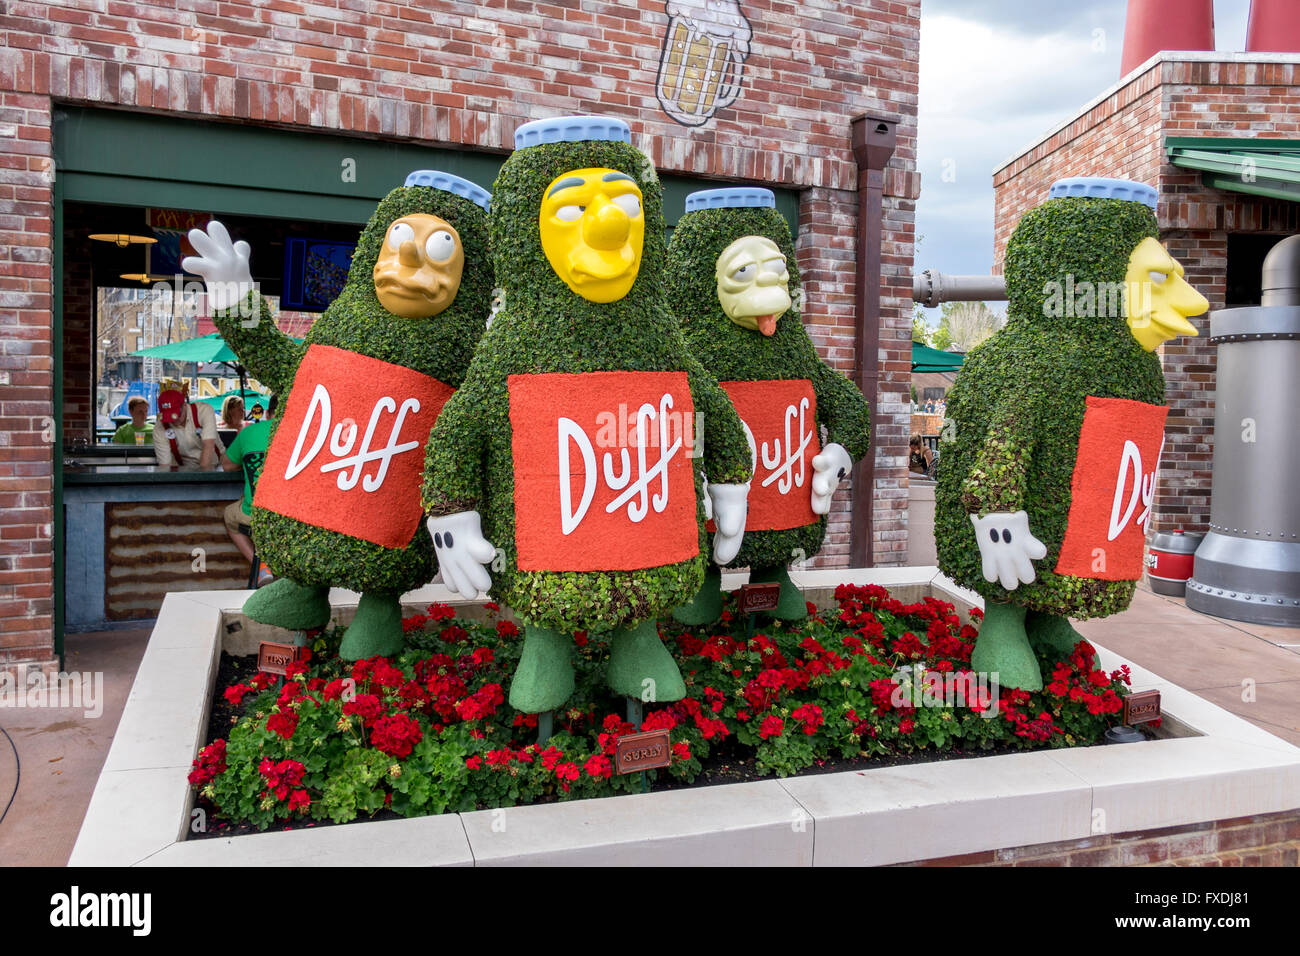 Life Size Statues Of Duff Beer Men From The Simpsons Cartoon TV Show At Universal Studios Florida - Stock Image